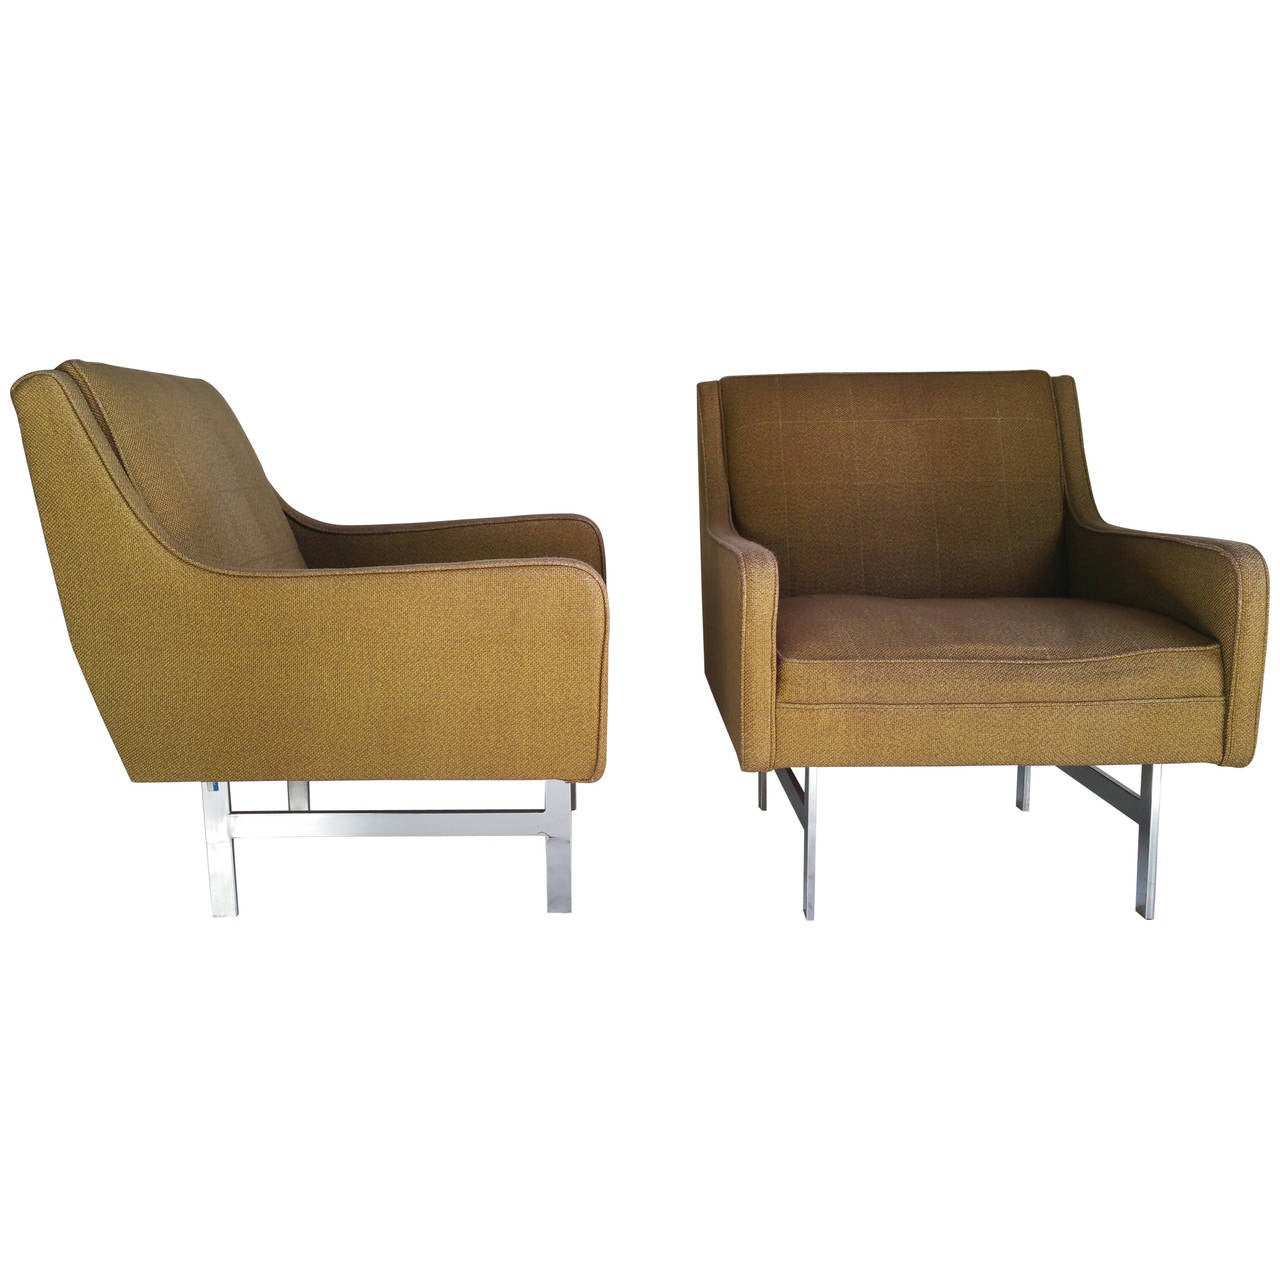 Pair of modernist lounge chairs for sale